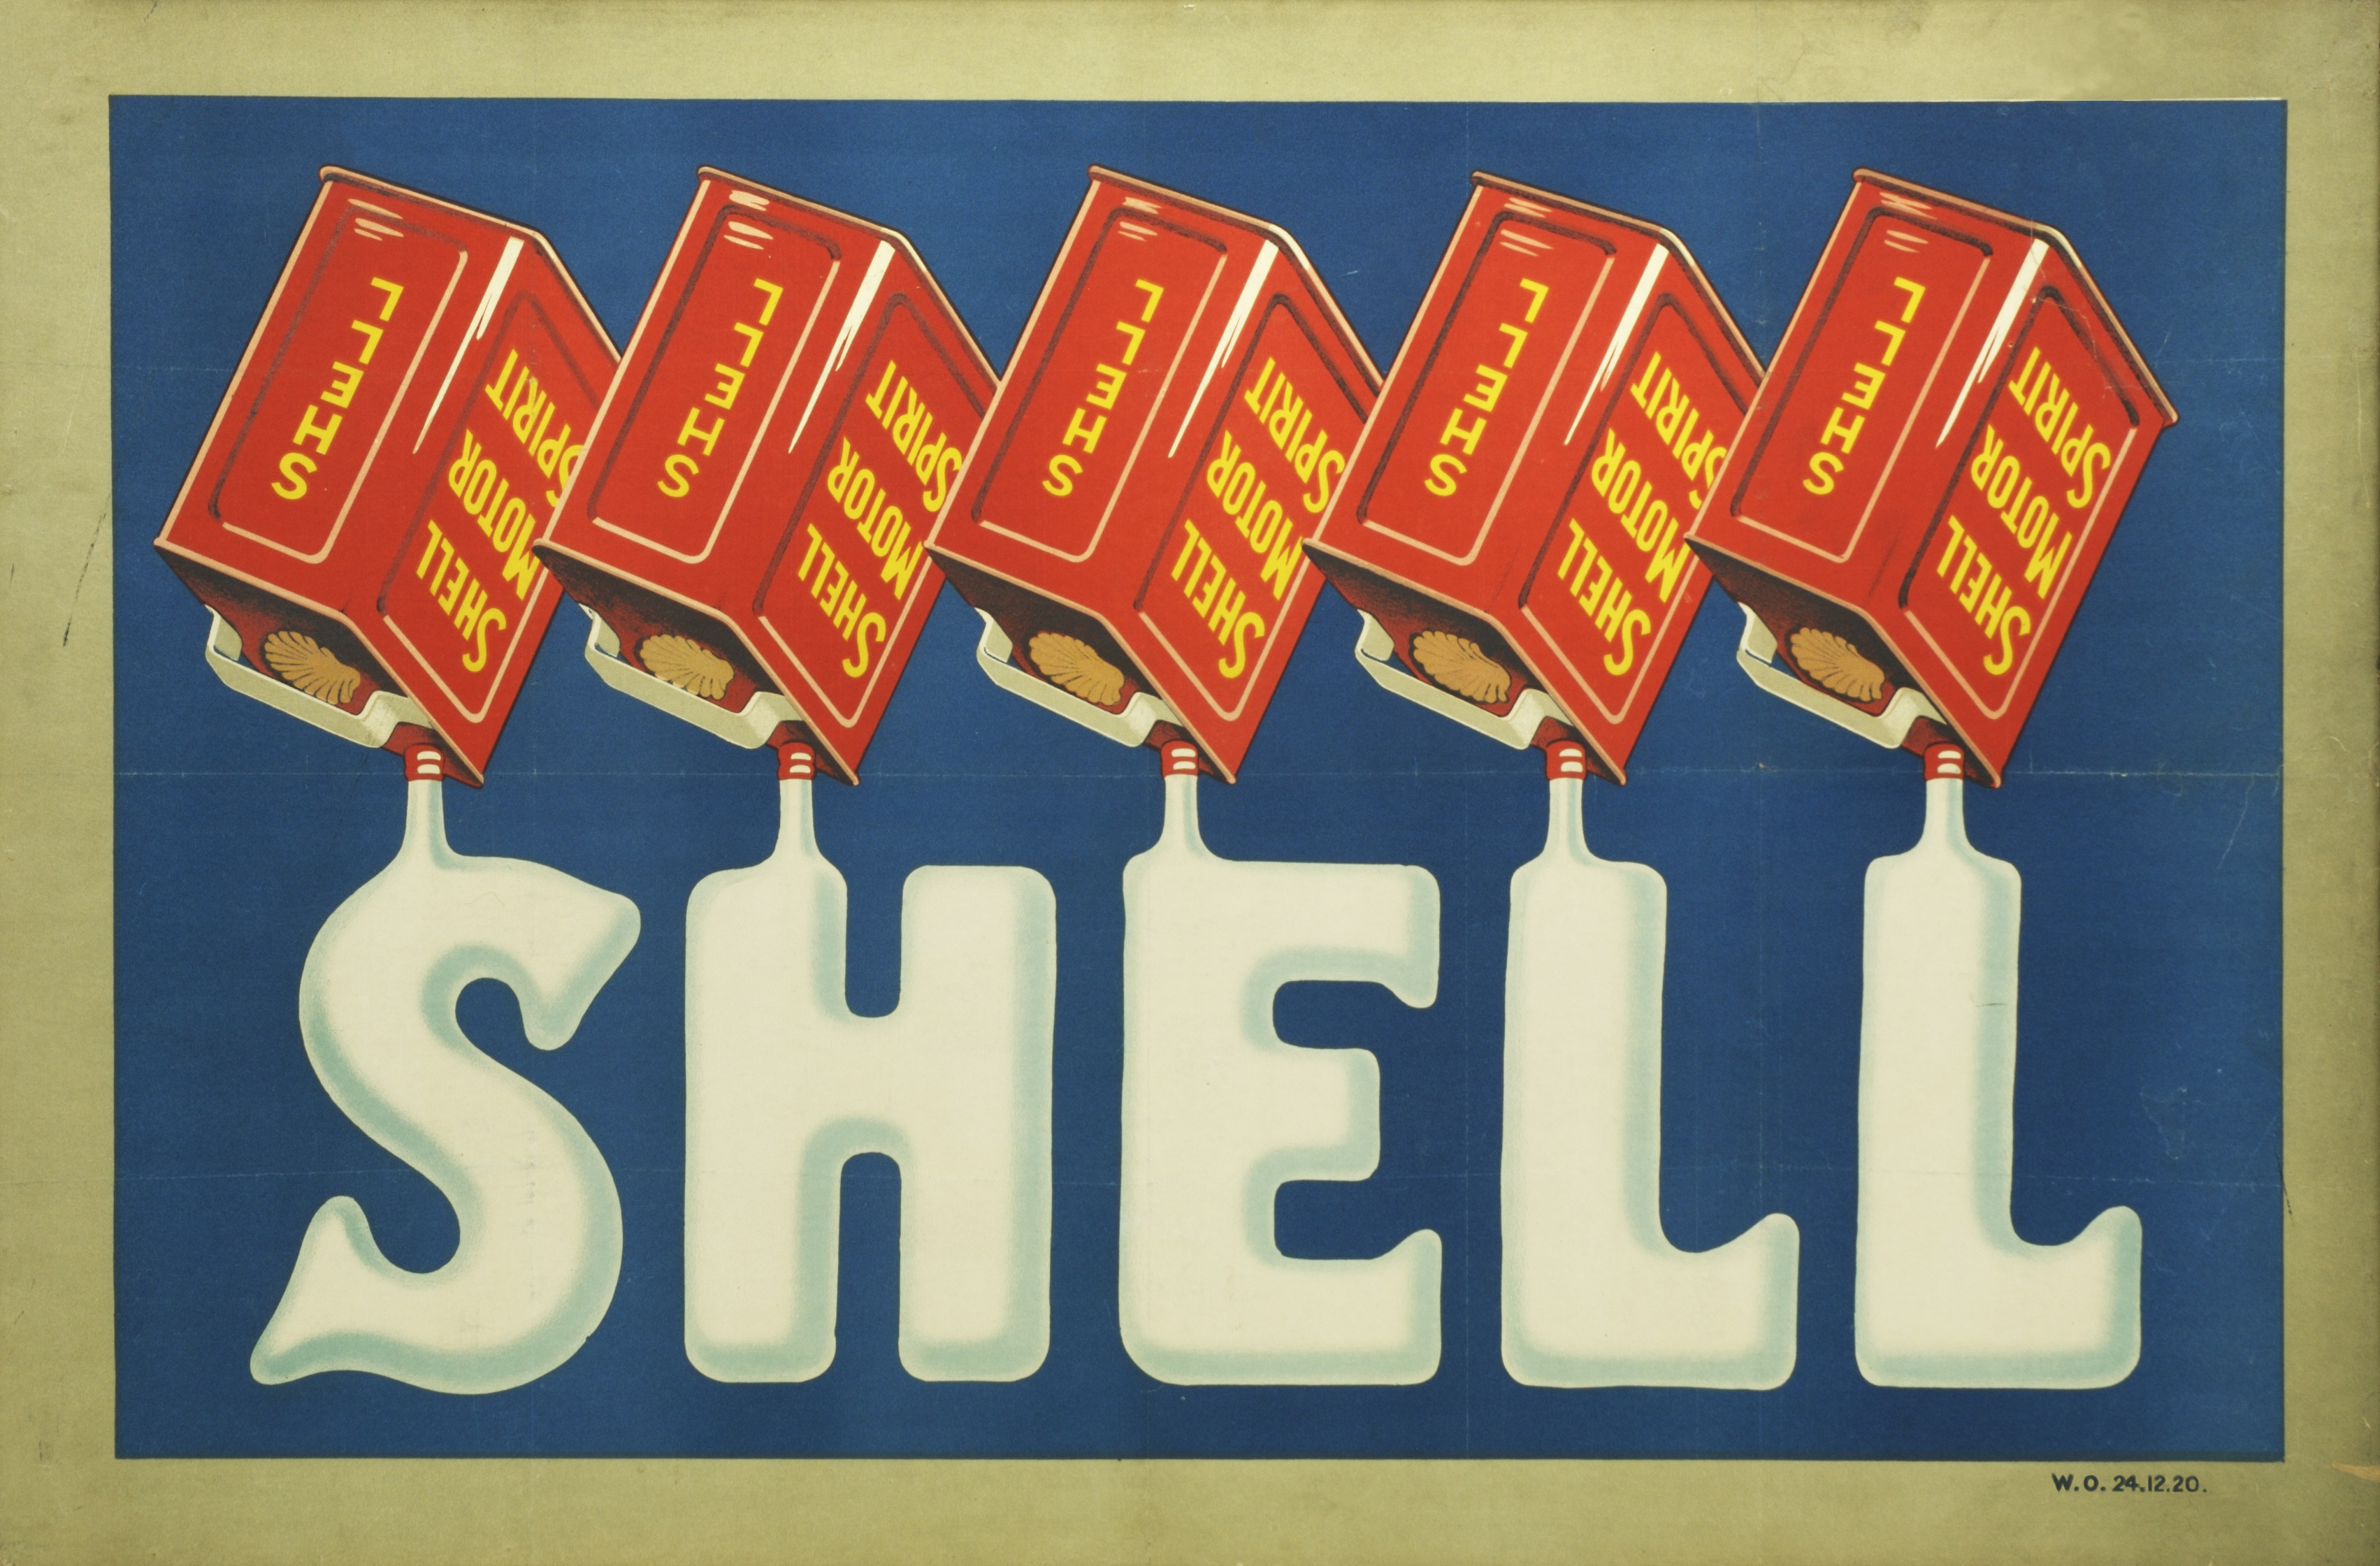 The first ever Shell Lorry Bill advert, from 1920